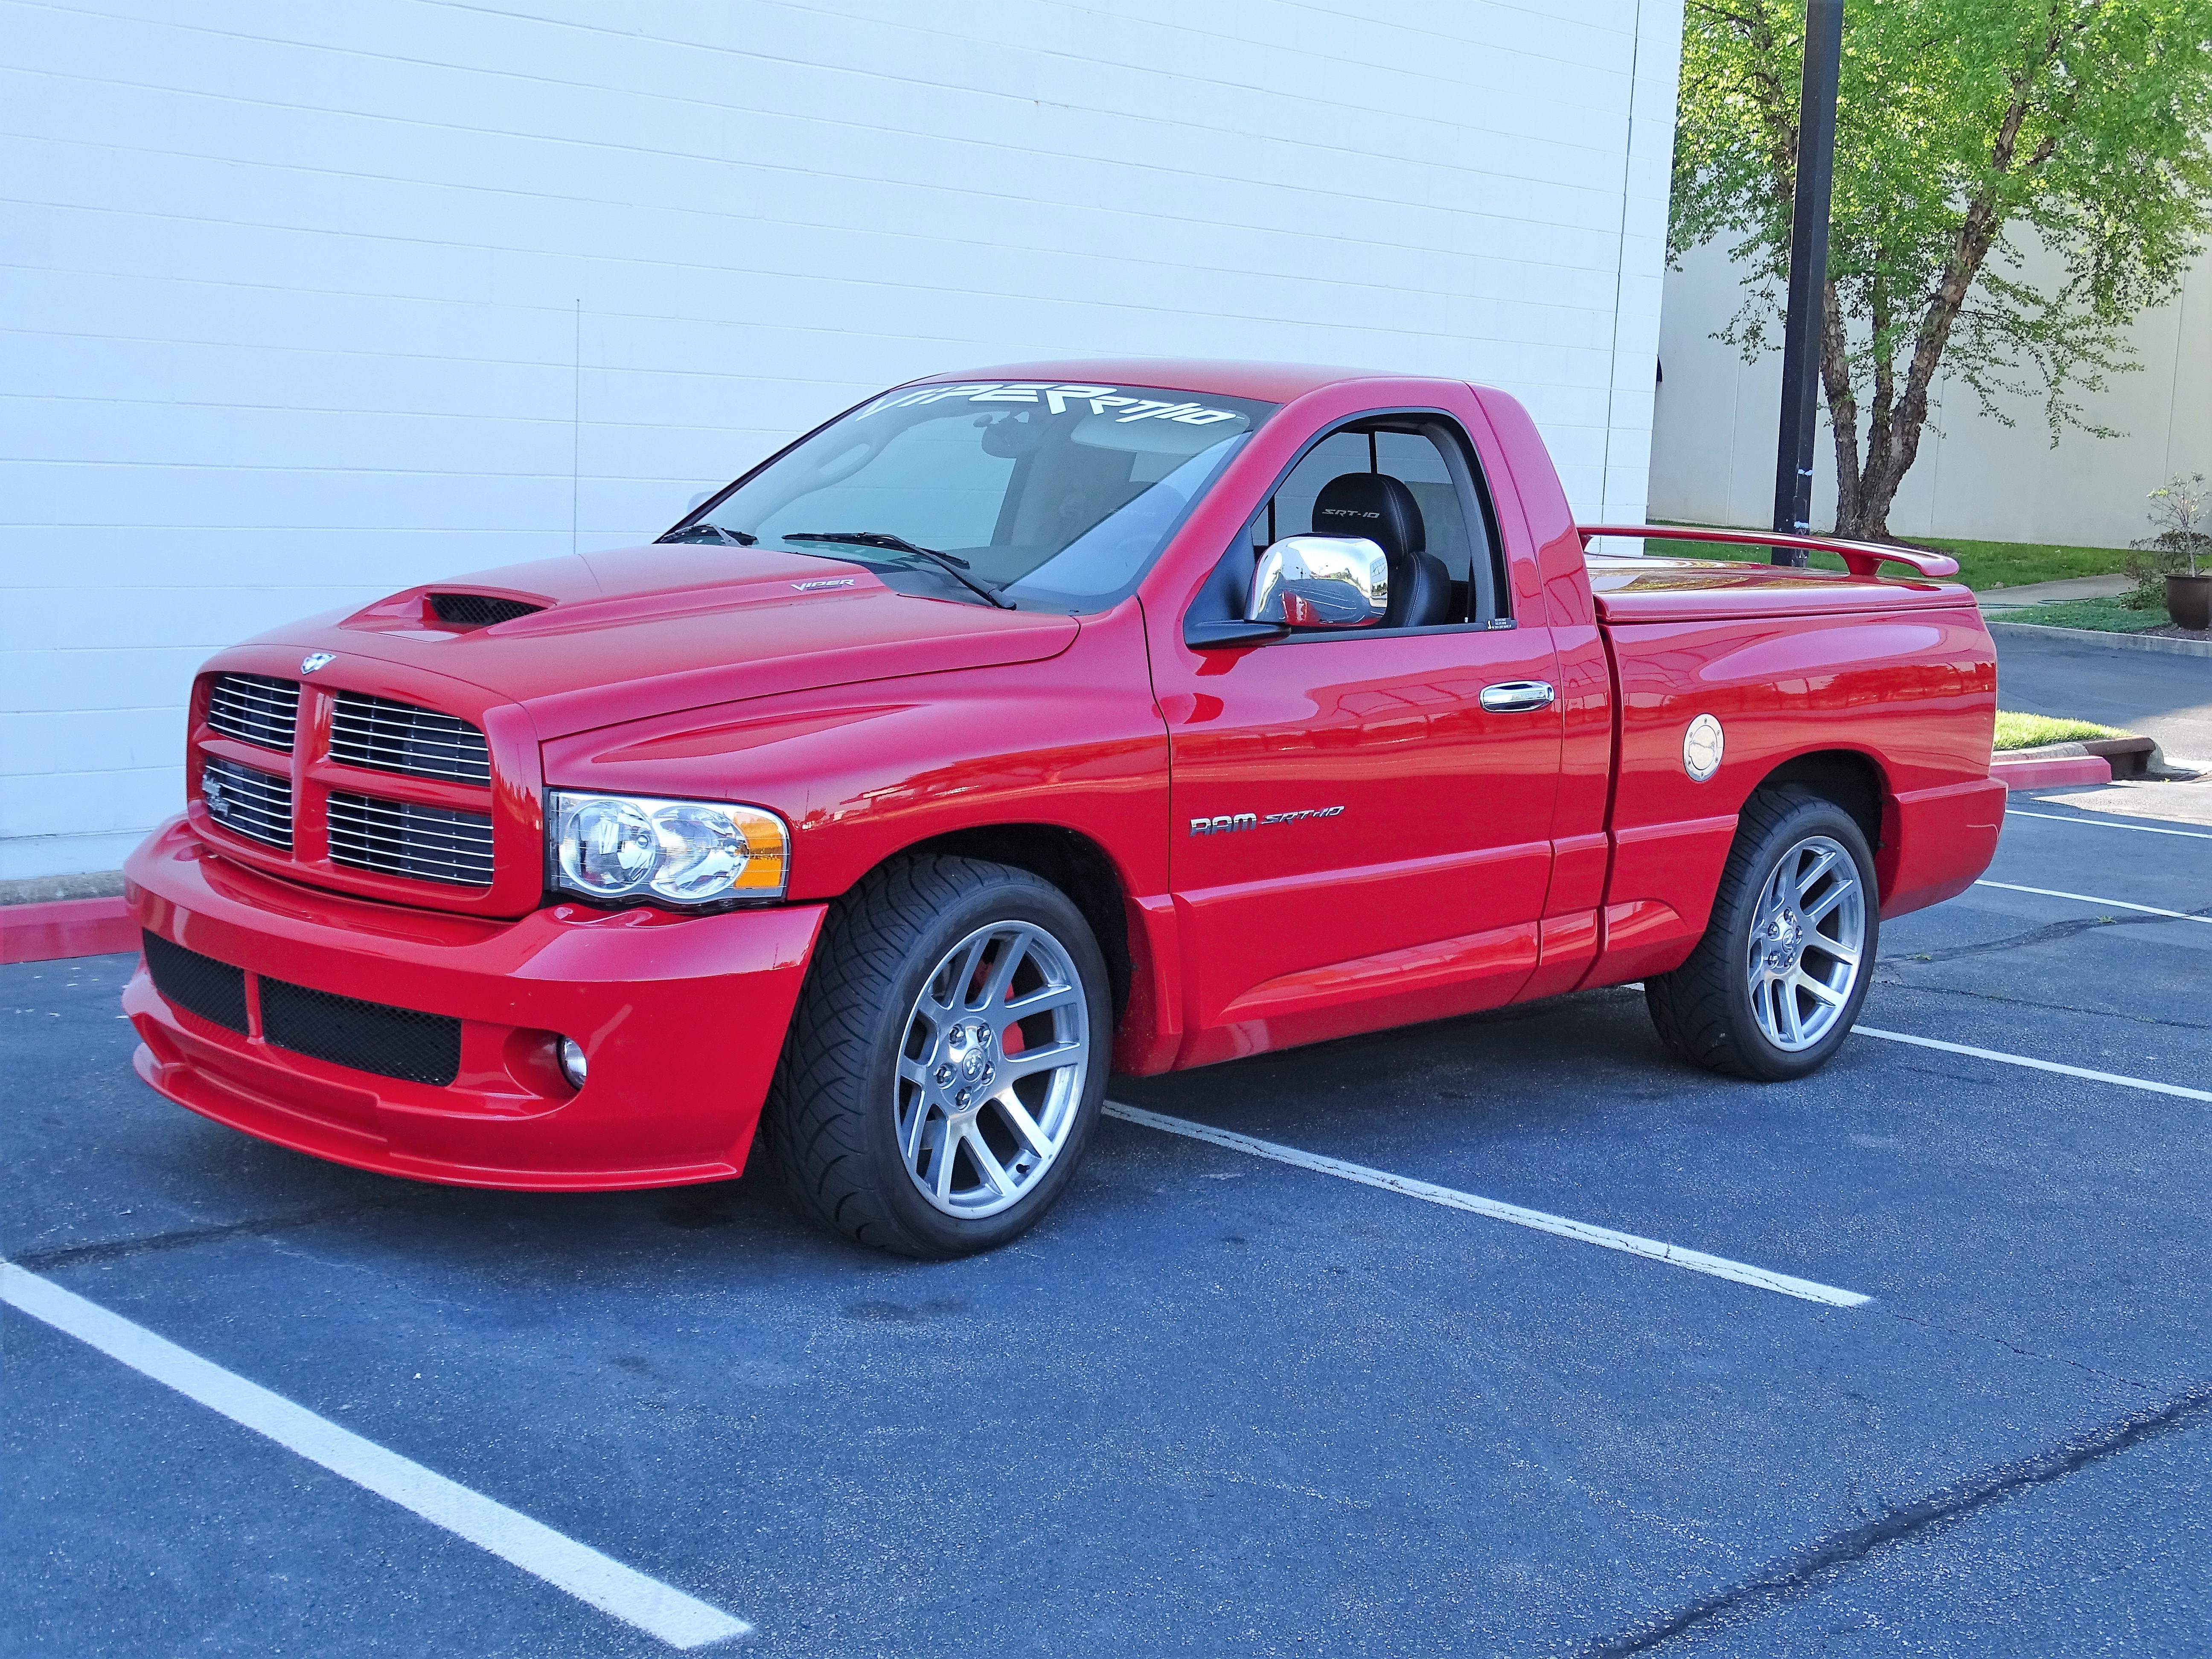 2005 dodge ram 1500 srt 10 gaa classic cars. Black Bedroom Furniture Sets. Home Design Ideas